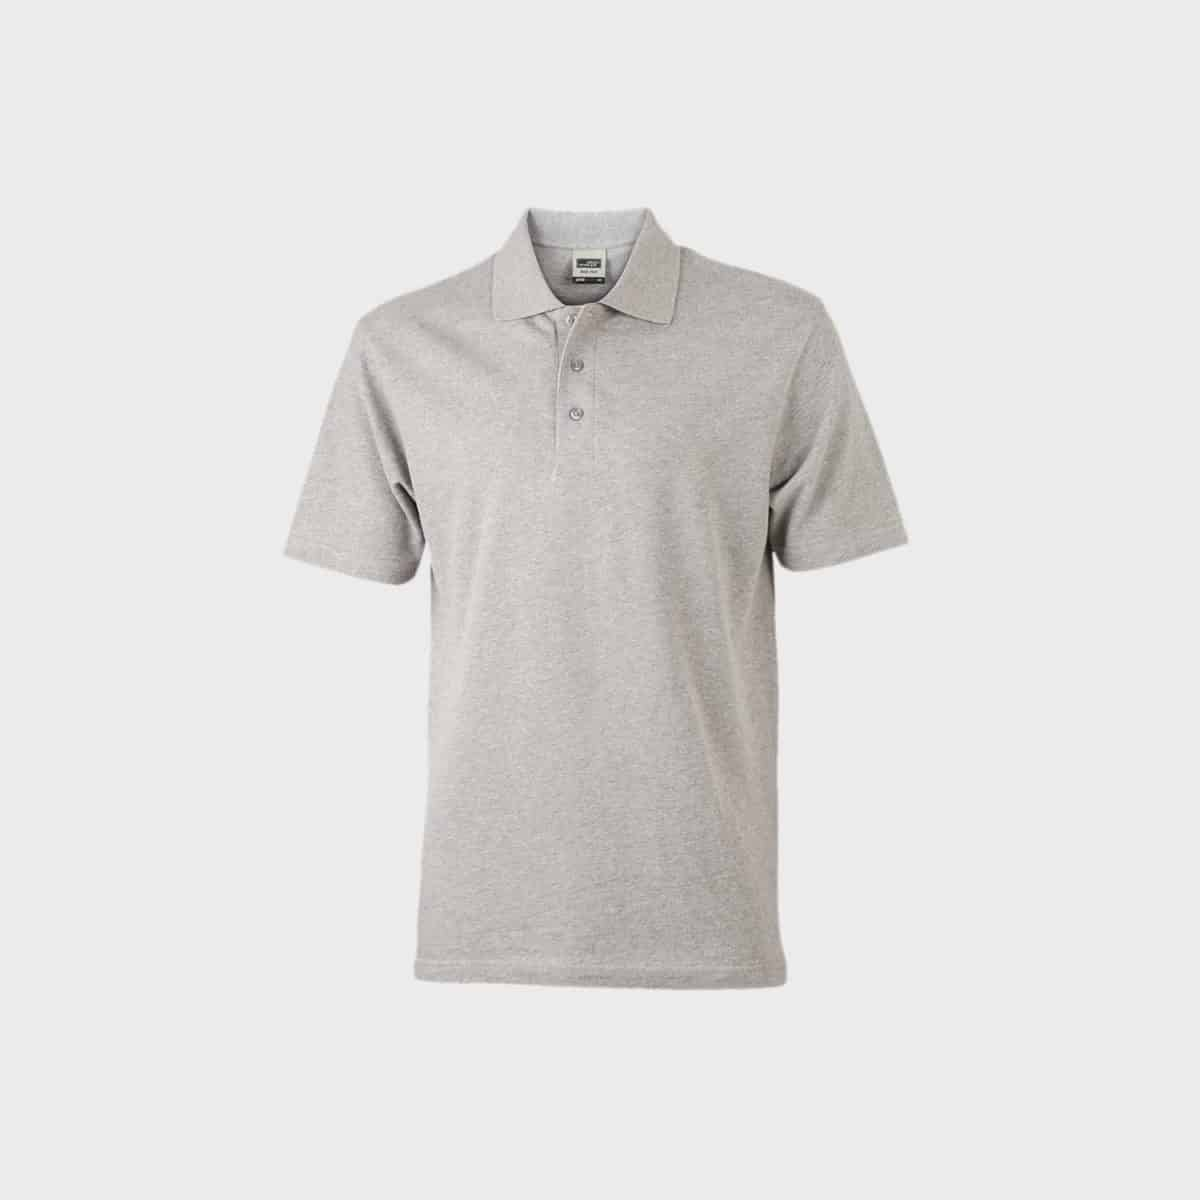 polo-basic-t-shirt-cotton-unisex-ash-kaufen-besticken_stickmanufaktur